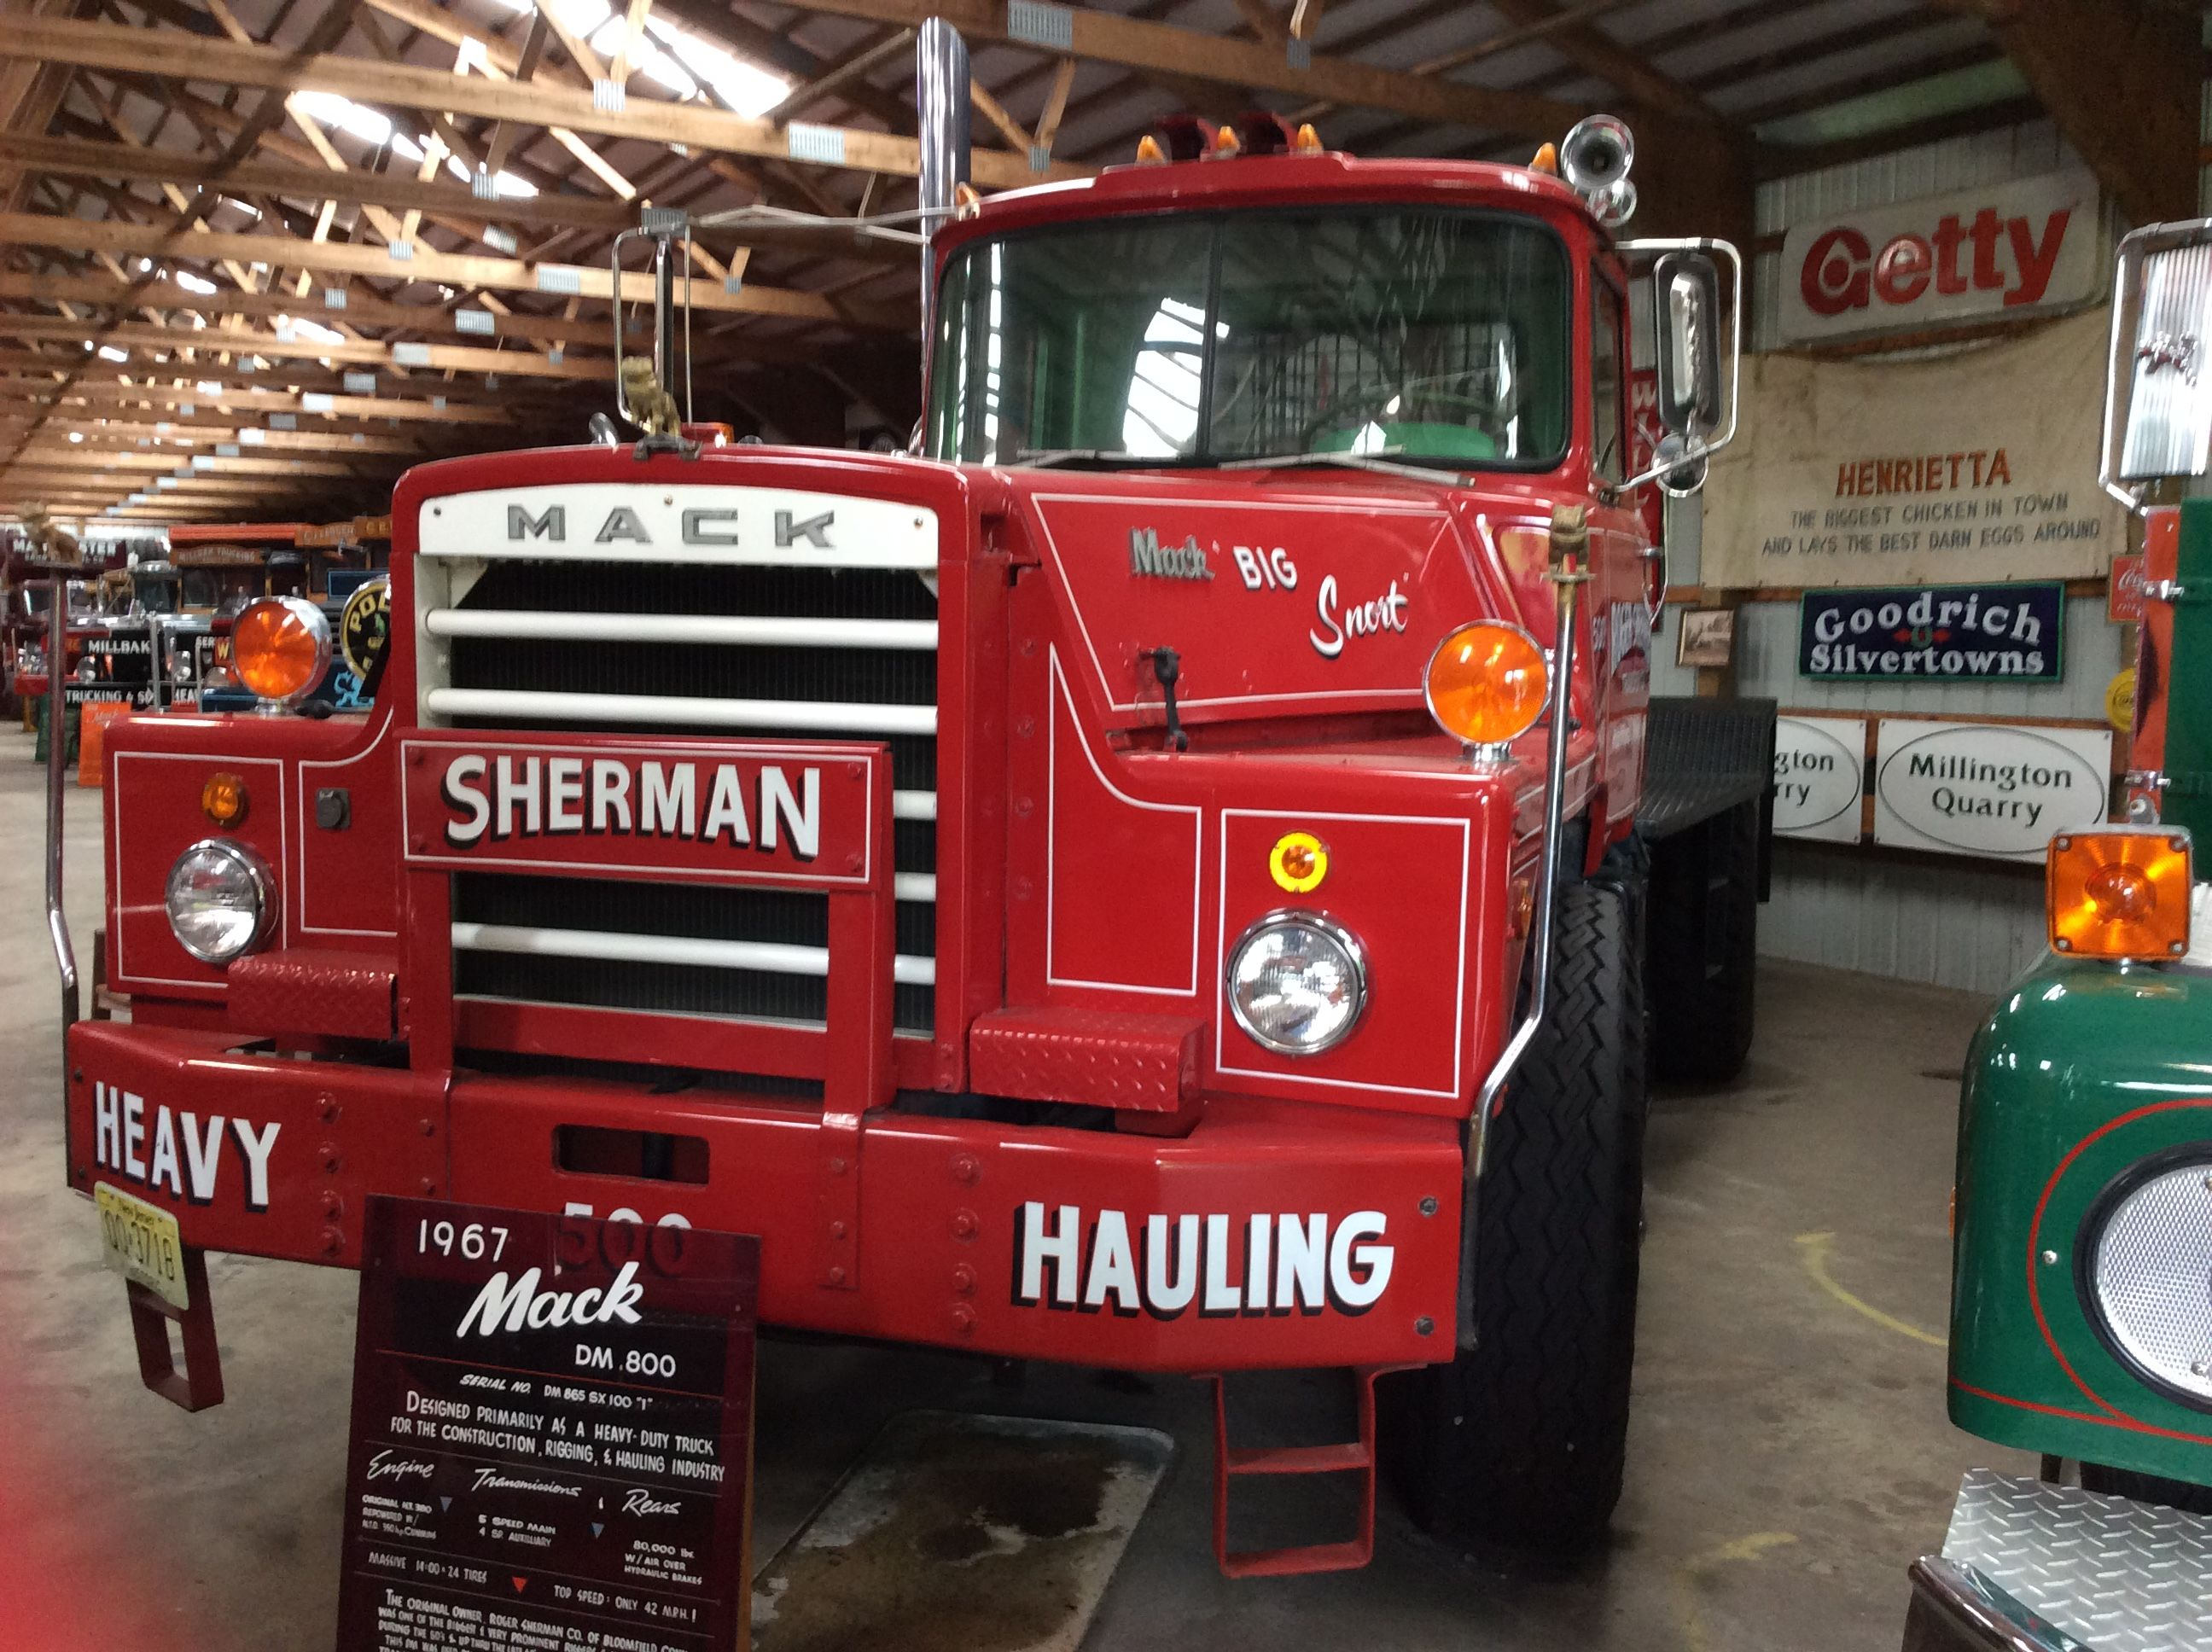 1967 mack dm 800 rugged as they come part of the mahan collection  [ 2592 x 1936 Pixel ]